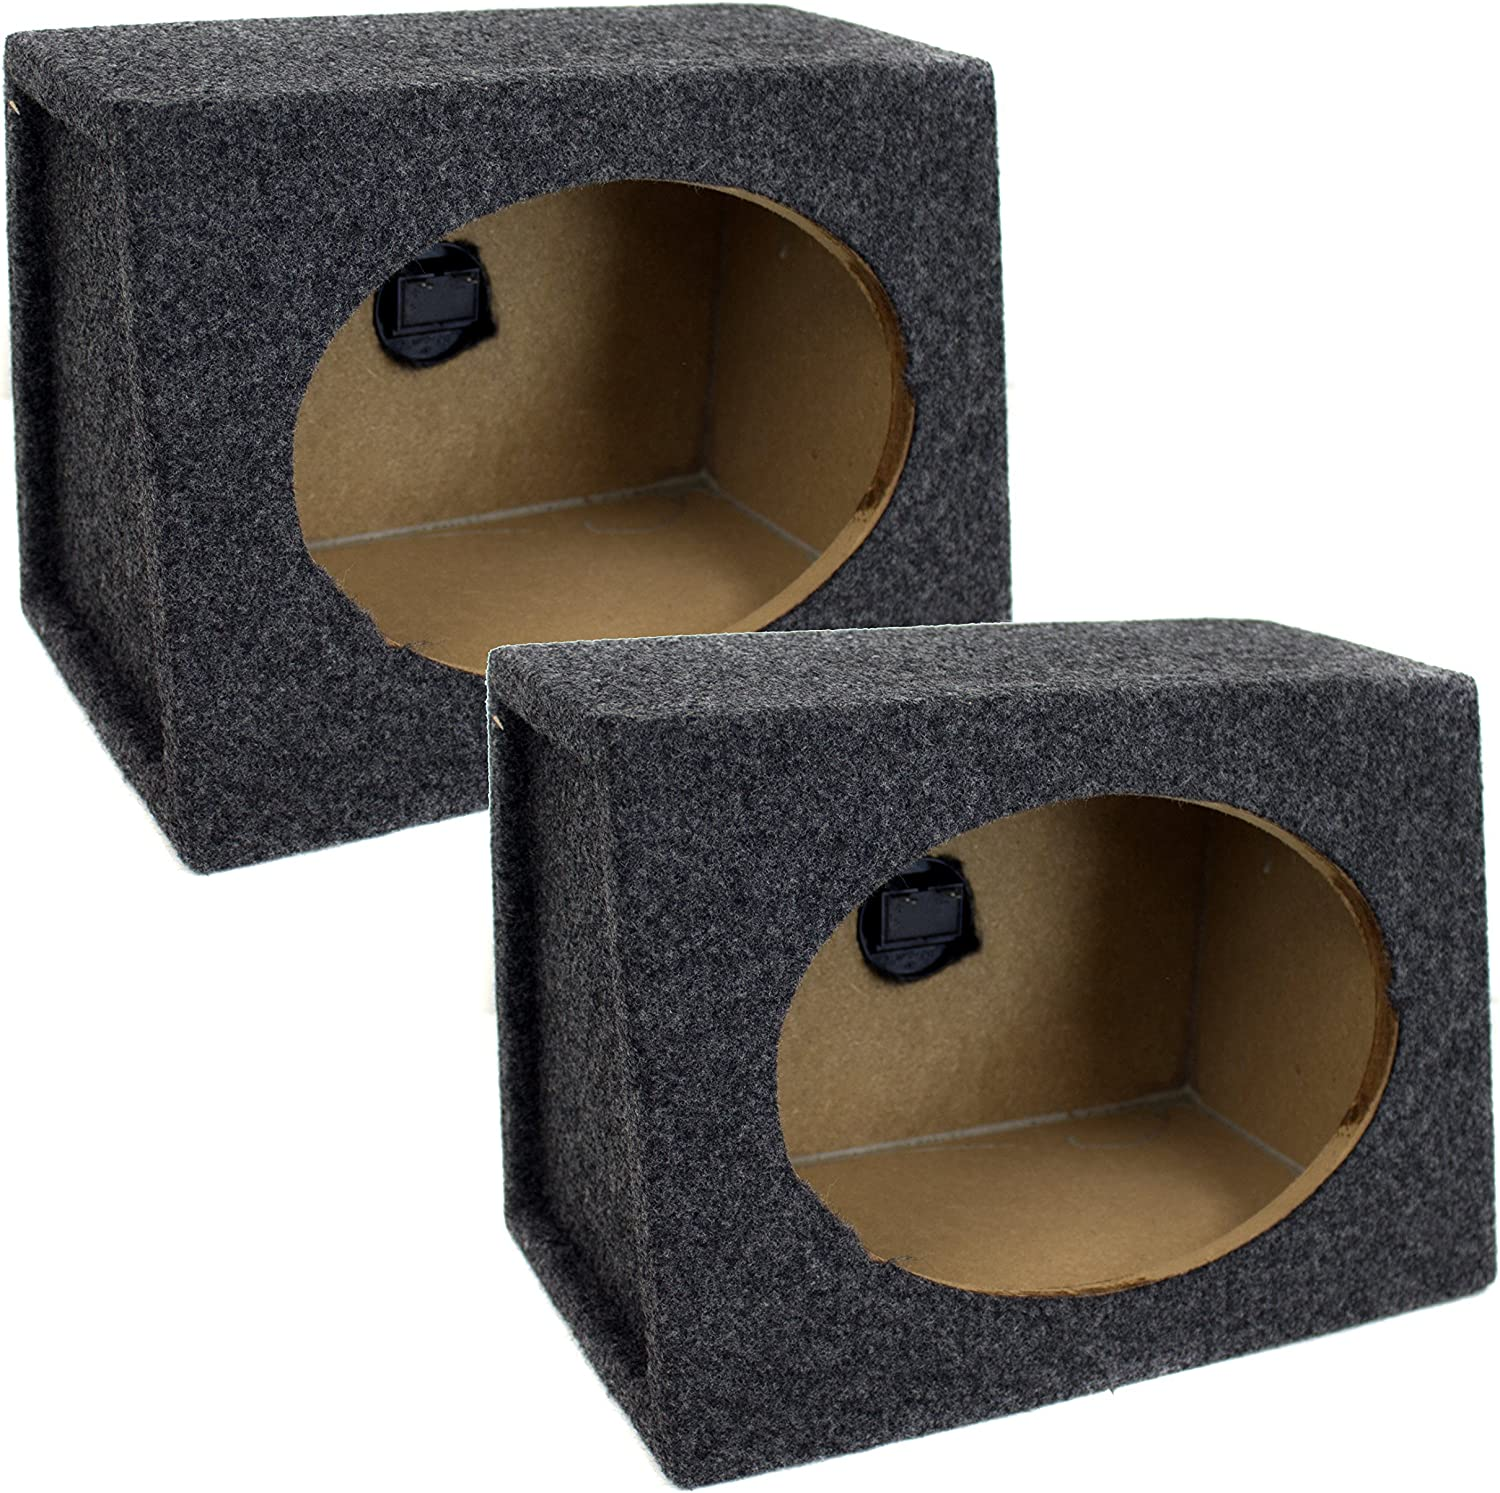 QPower Angled Style 6x9 Speaker Box Enclosures